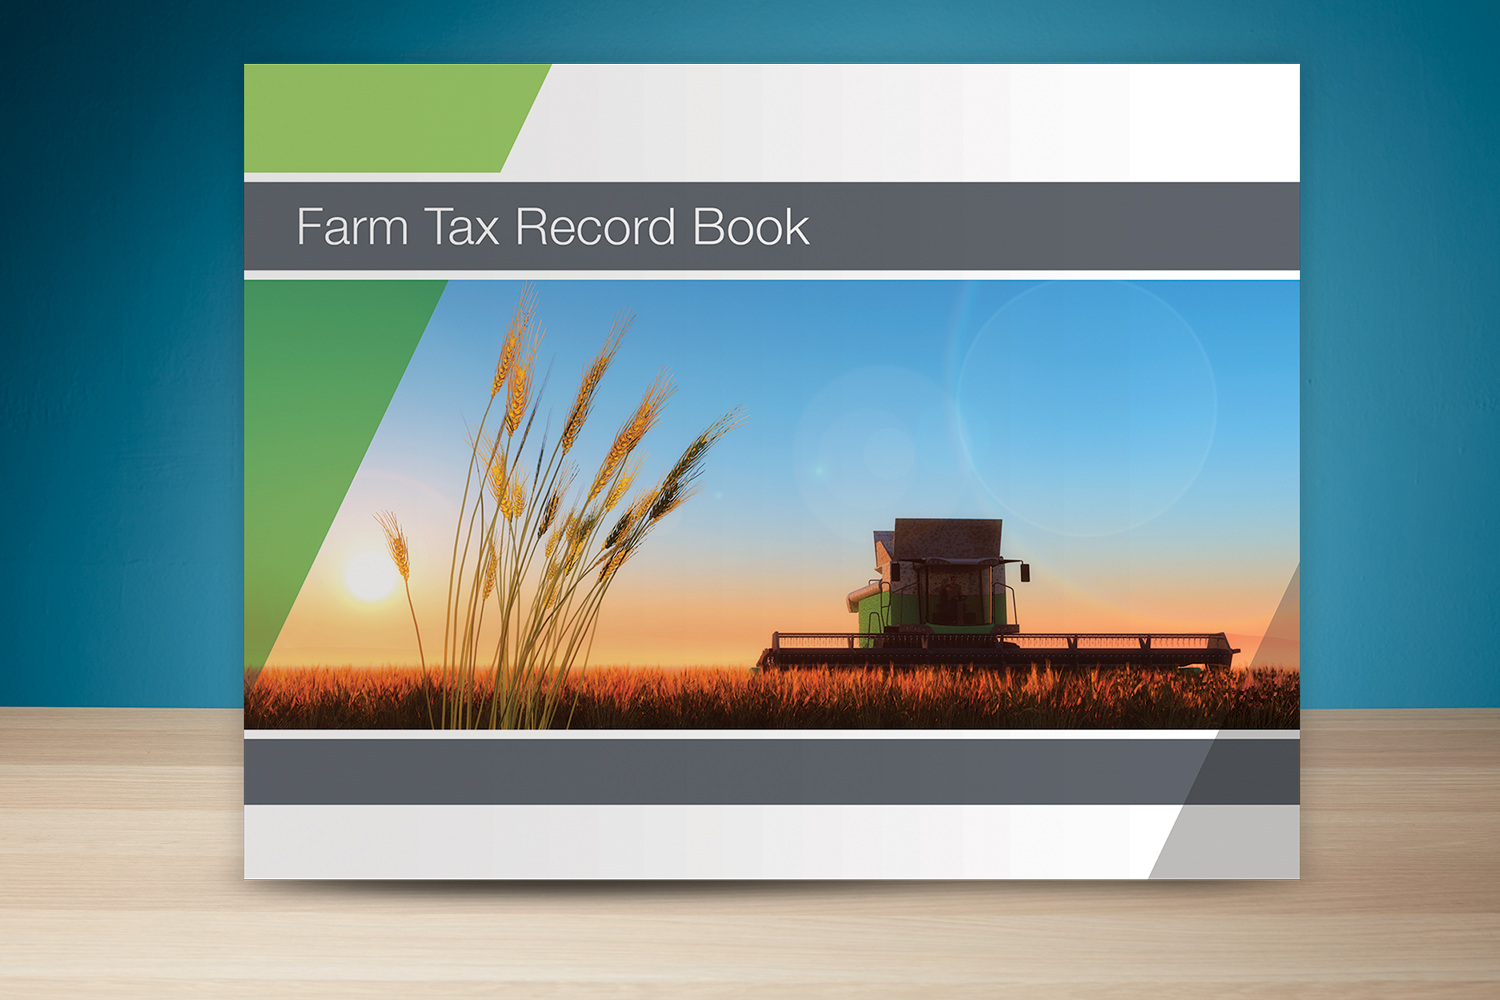 Farm Tax Record Book - #610